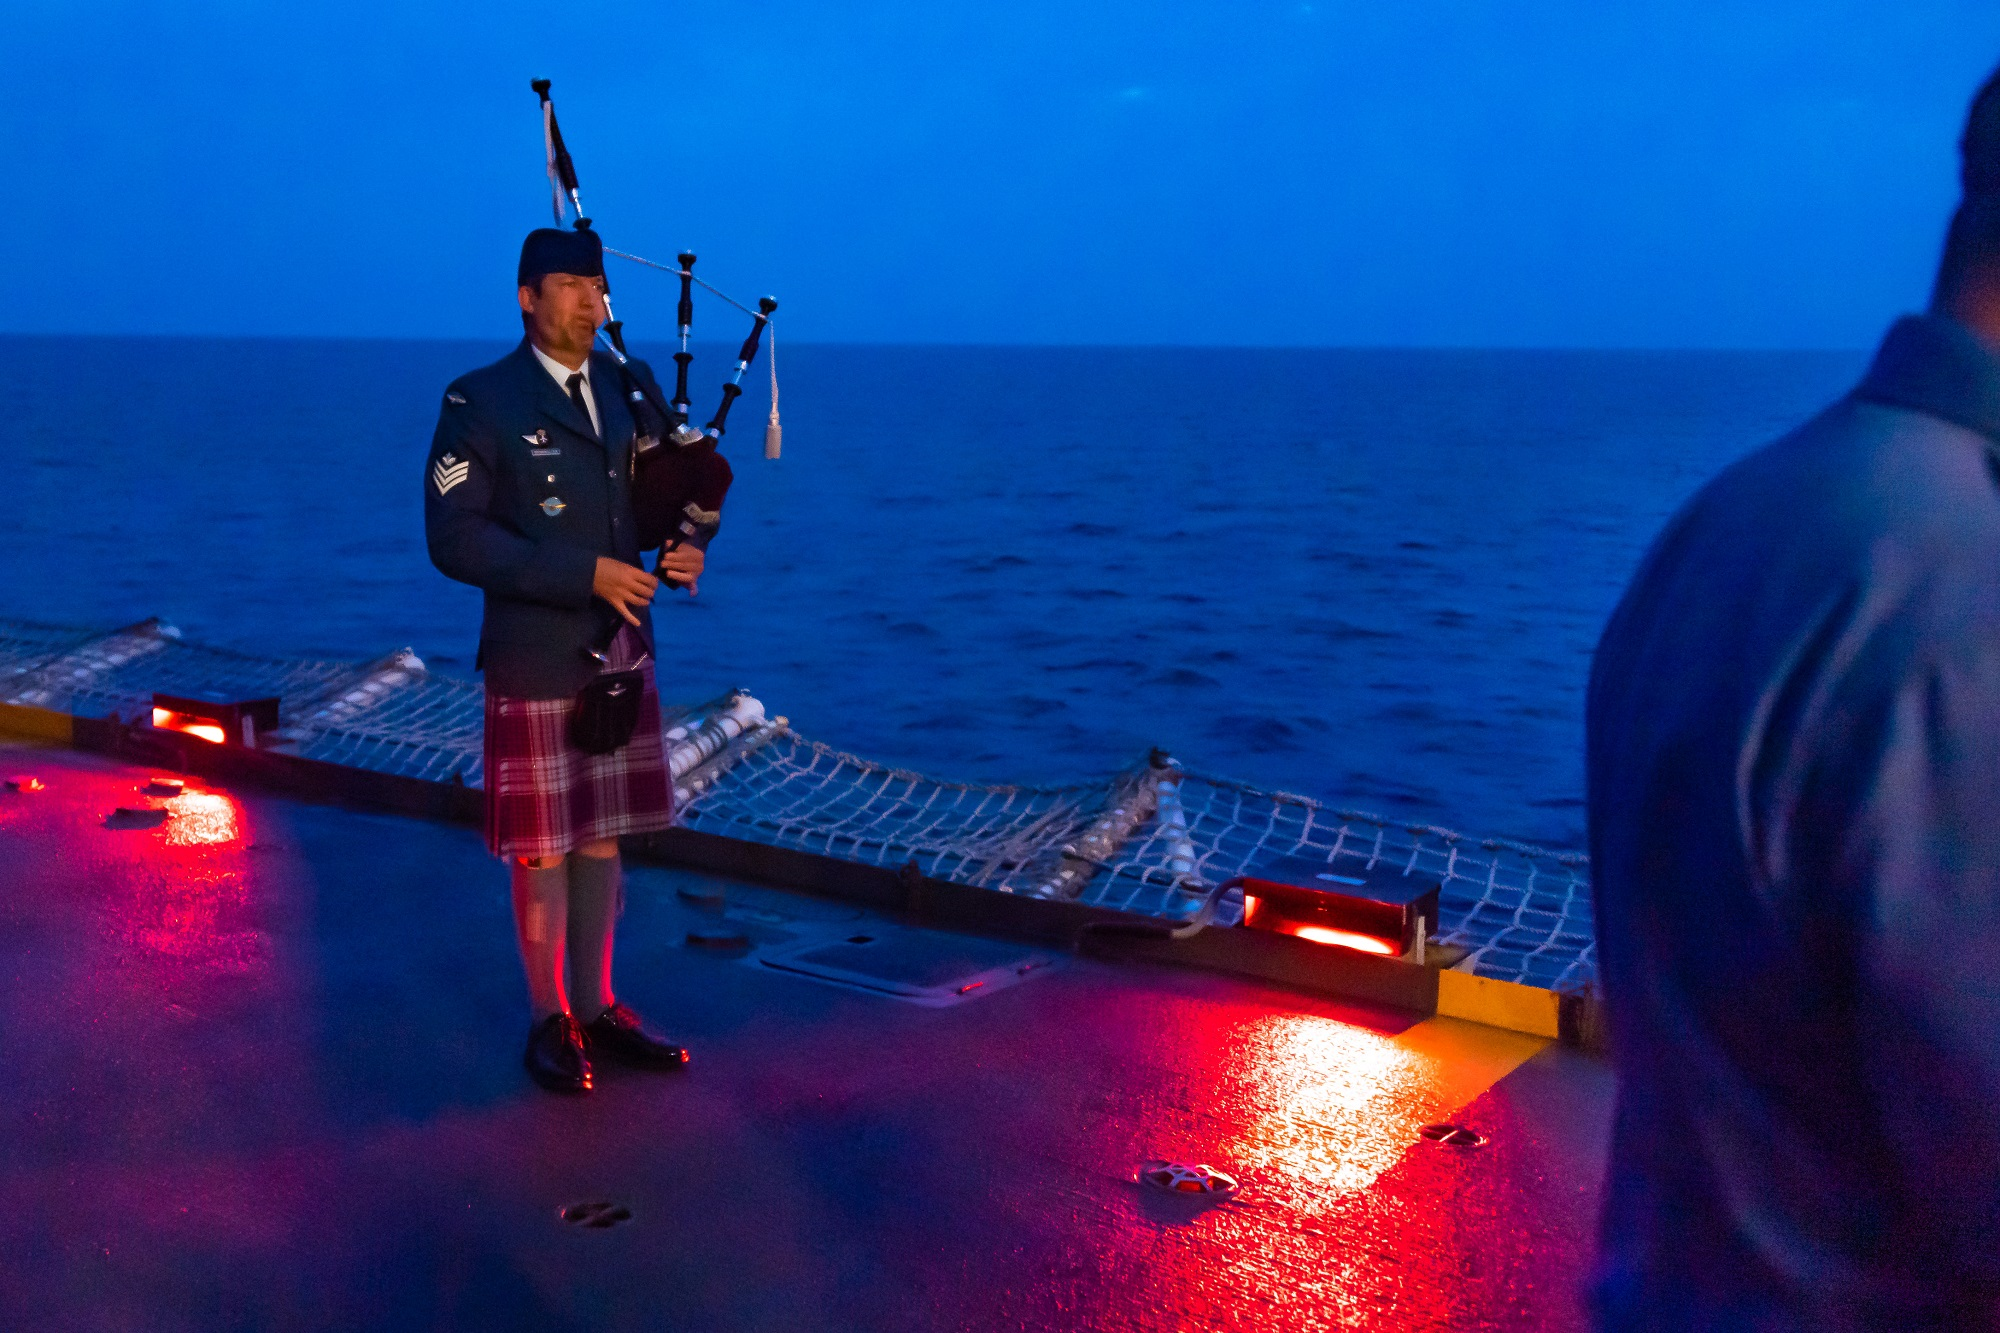 A man plays bagpipes on the deck of a ship in the early morning darkness.